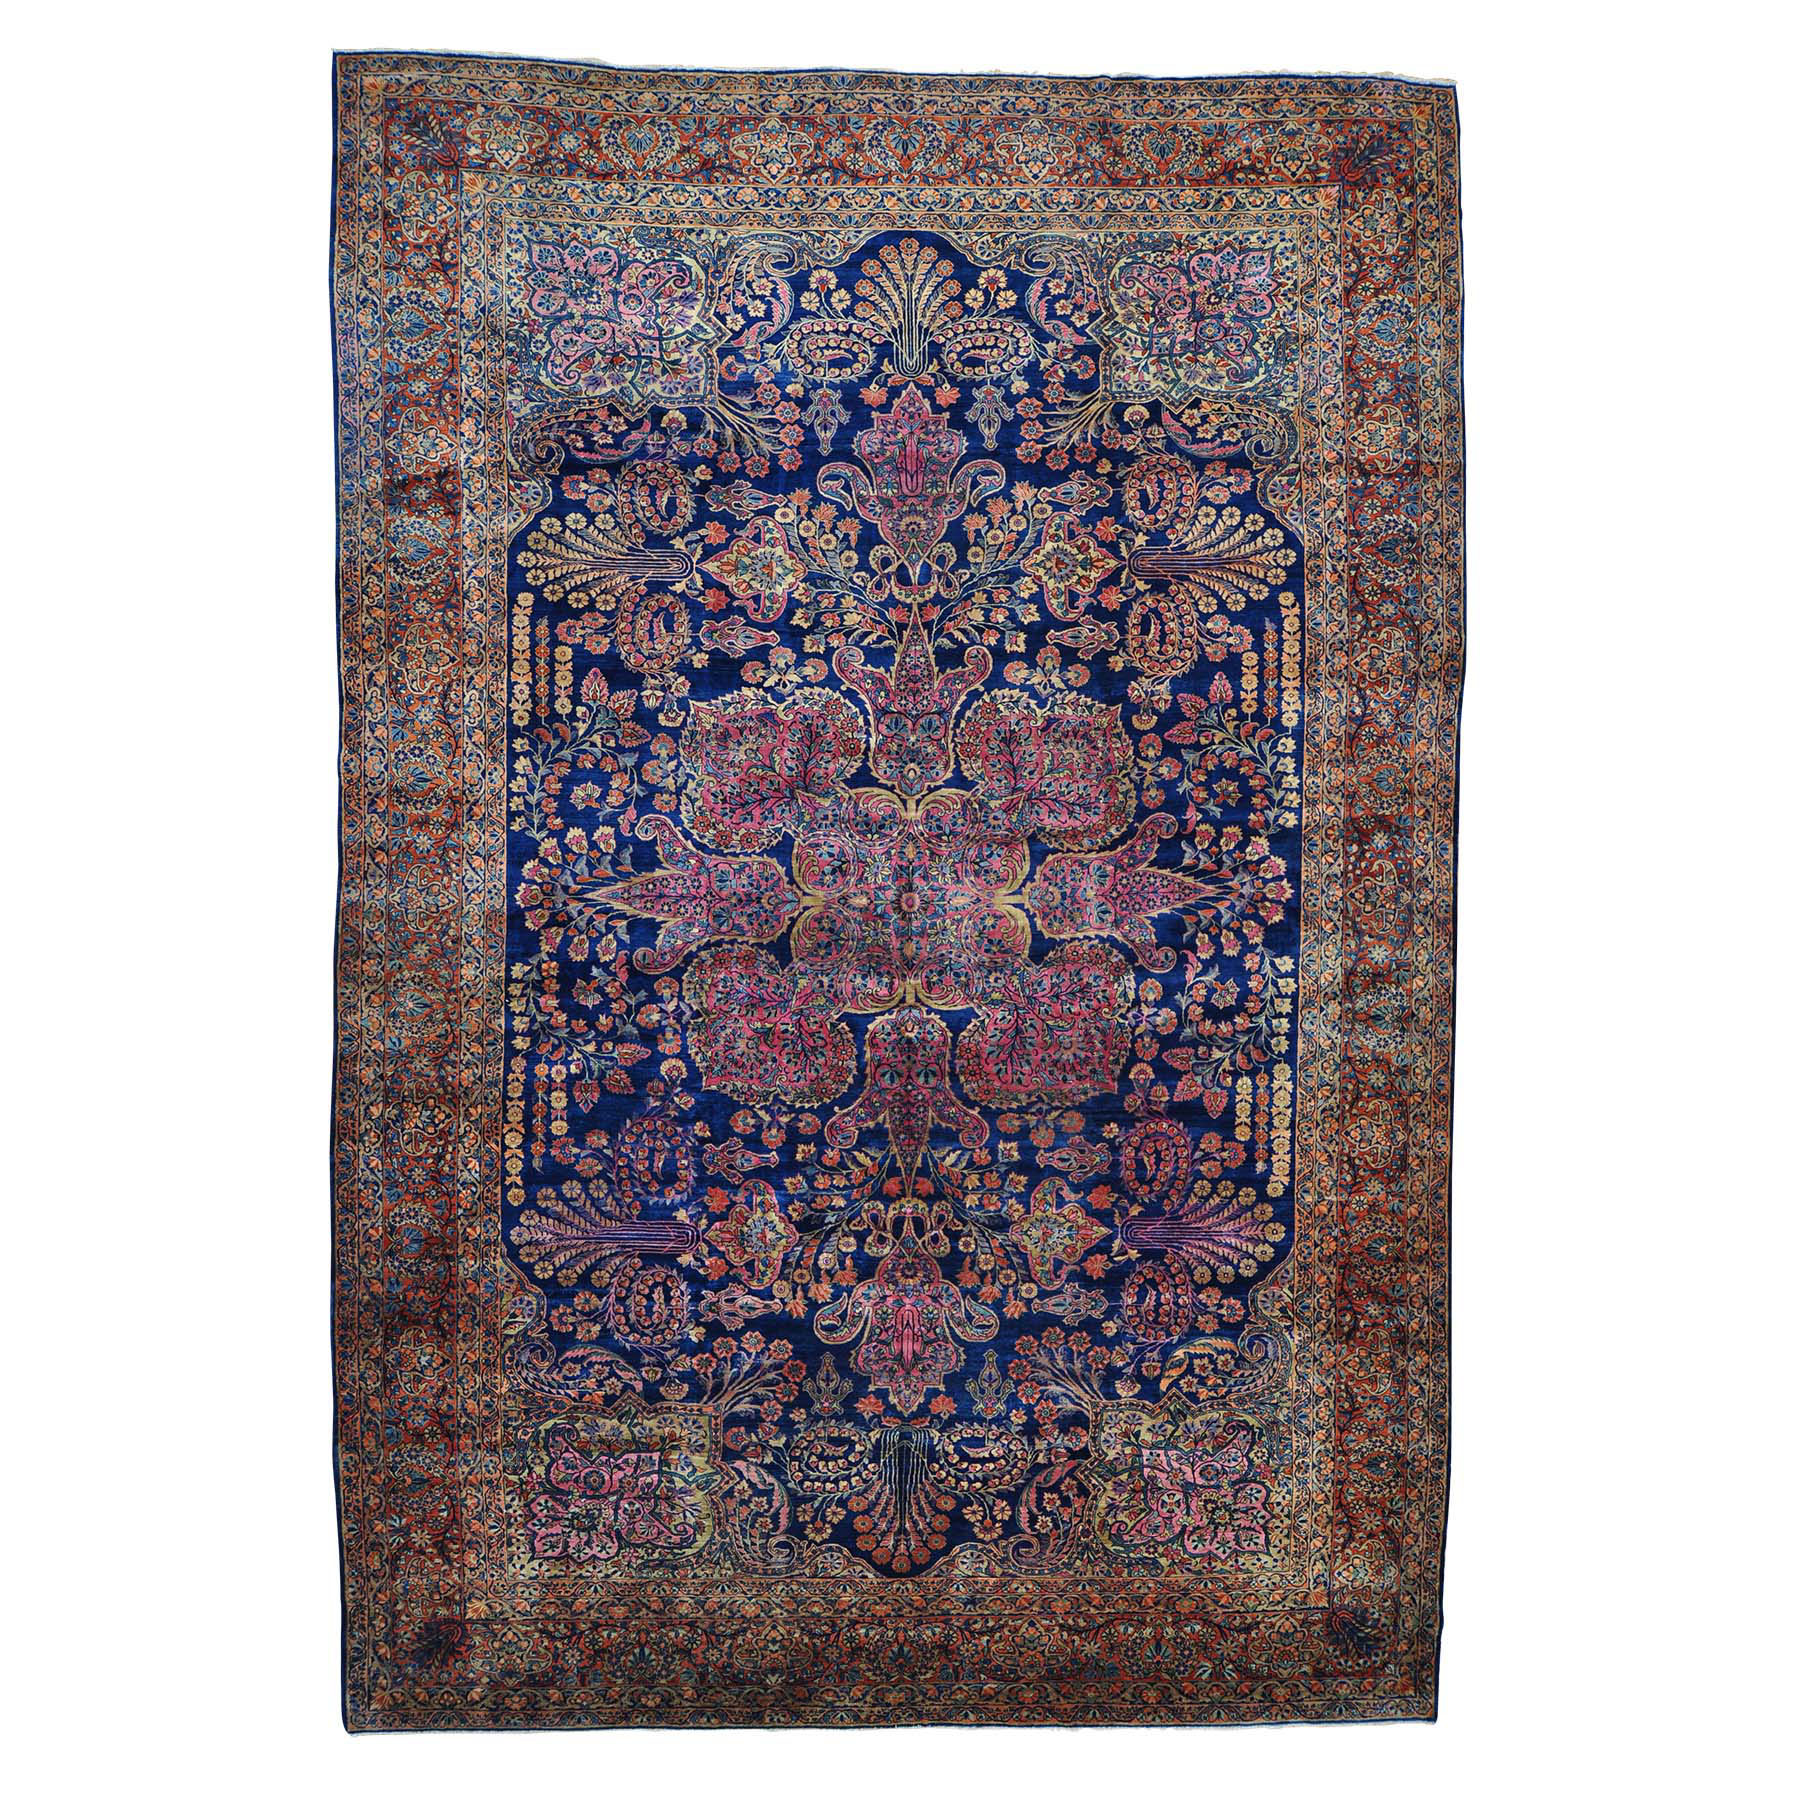 Antique Collection Hand Knotted Blue Rug No: 152854